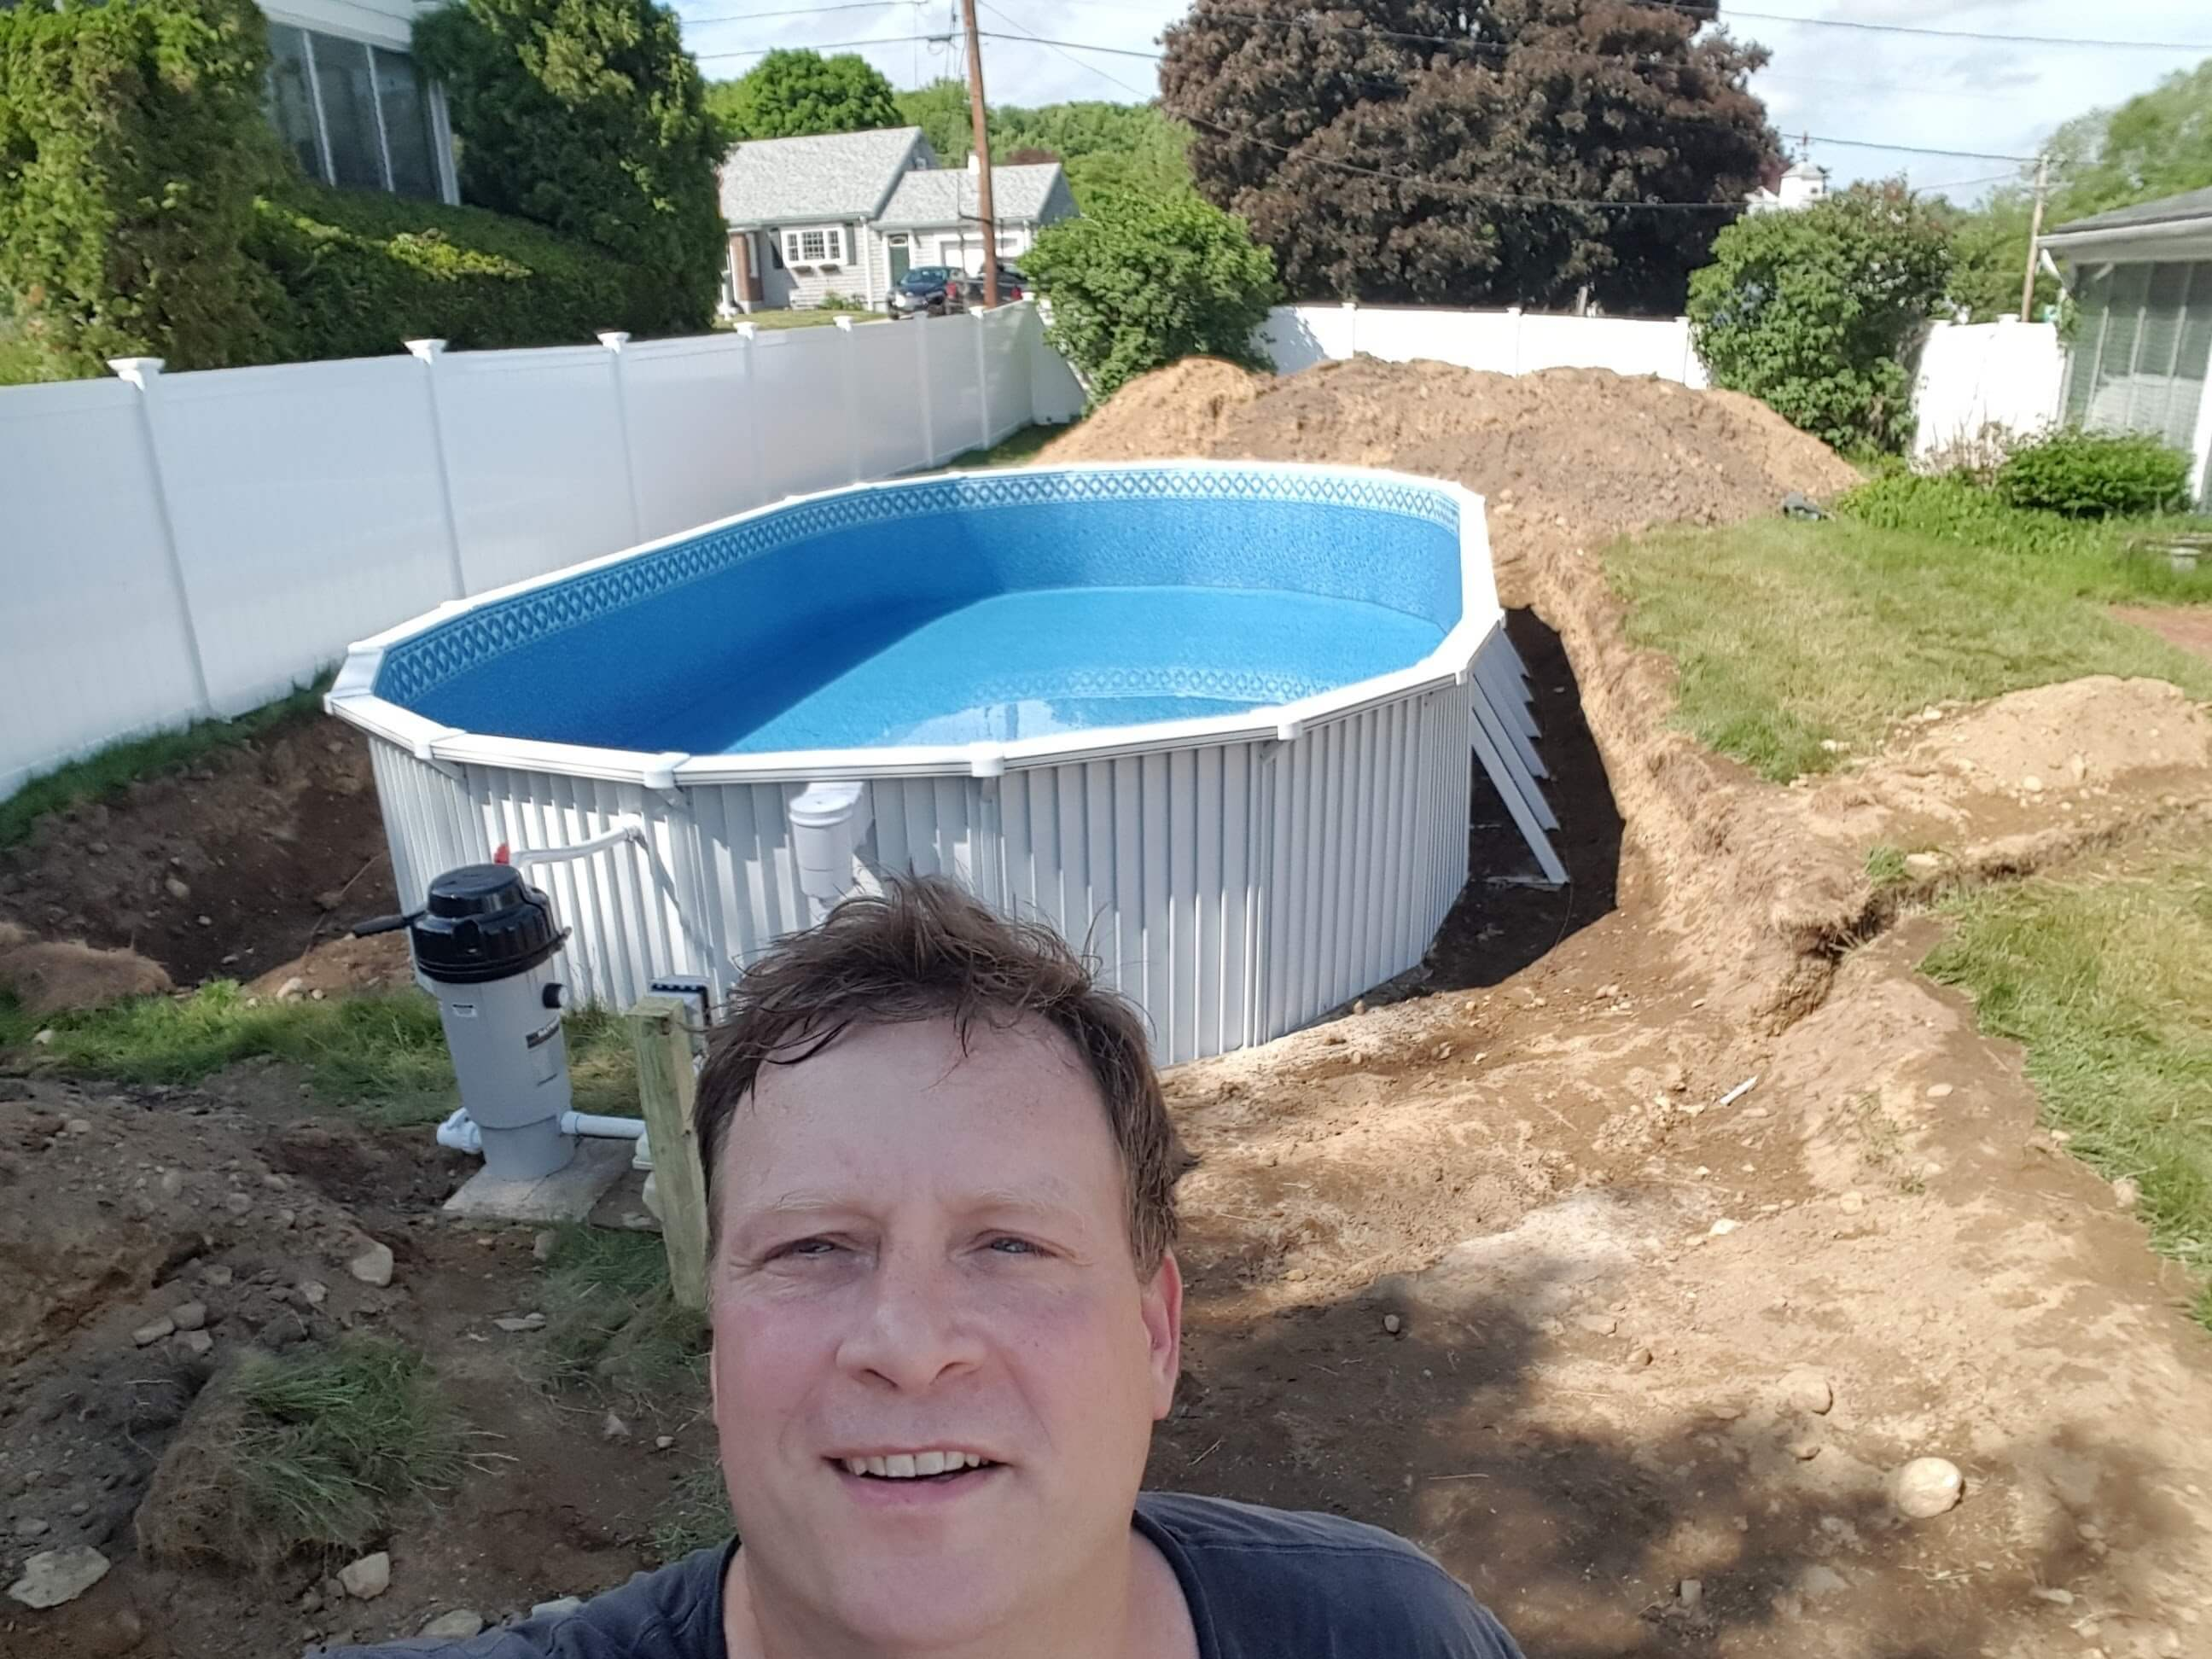 Semi inground pools brands options prices reviews and advice for Buying an above ground pool guide